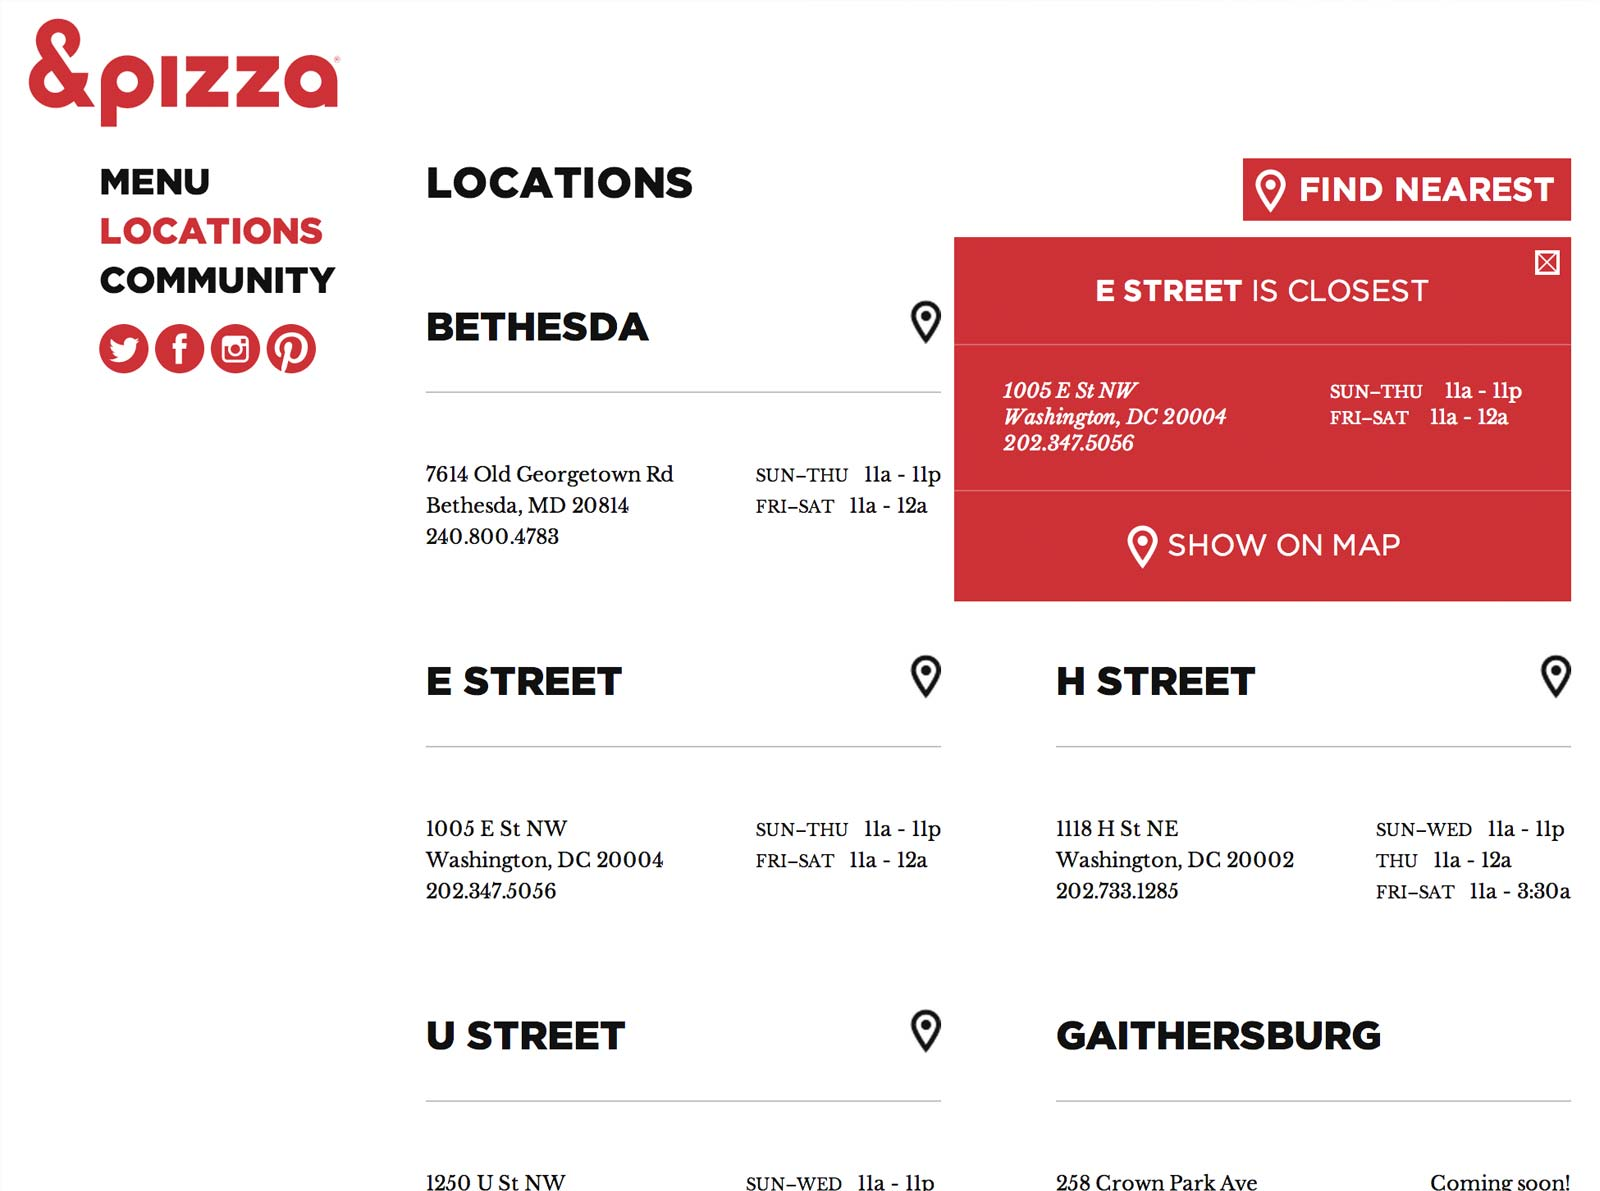 &pizza locations page